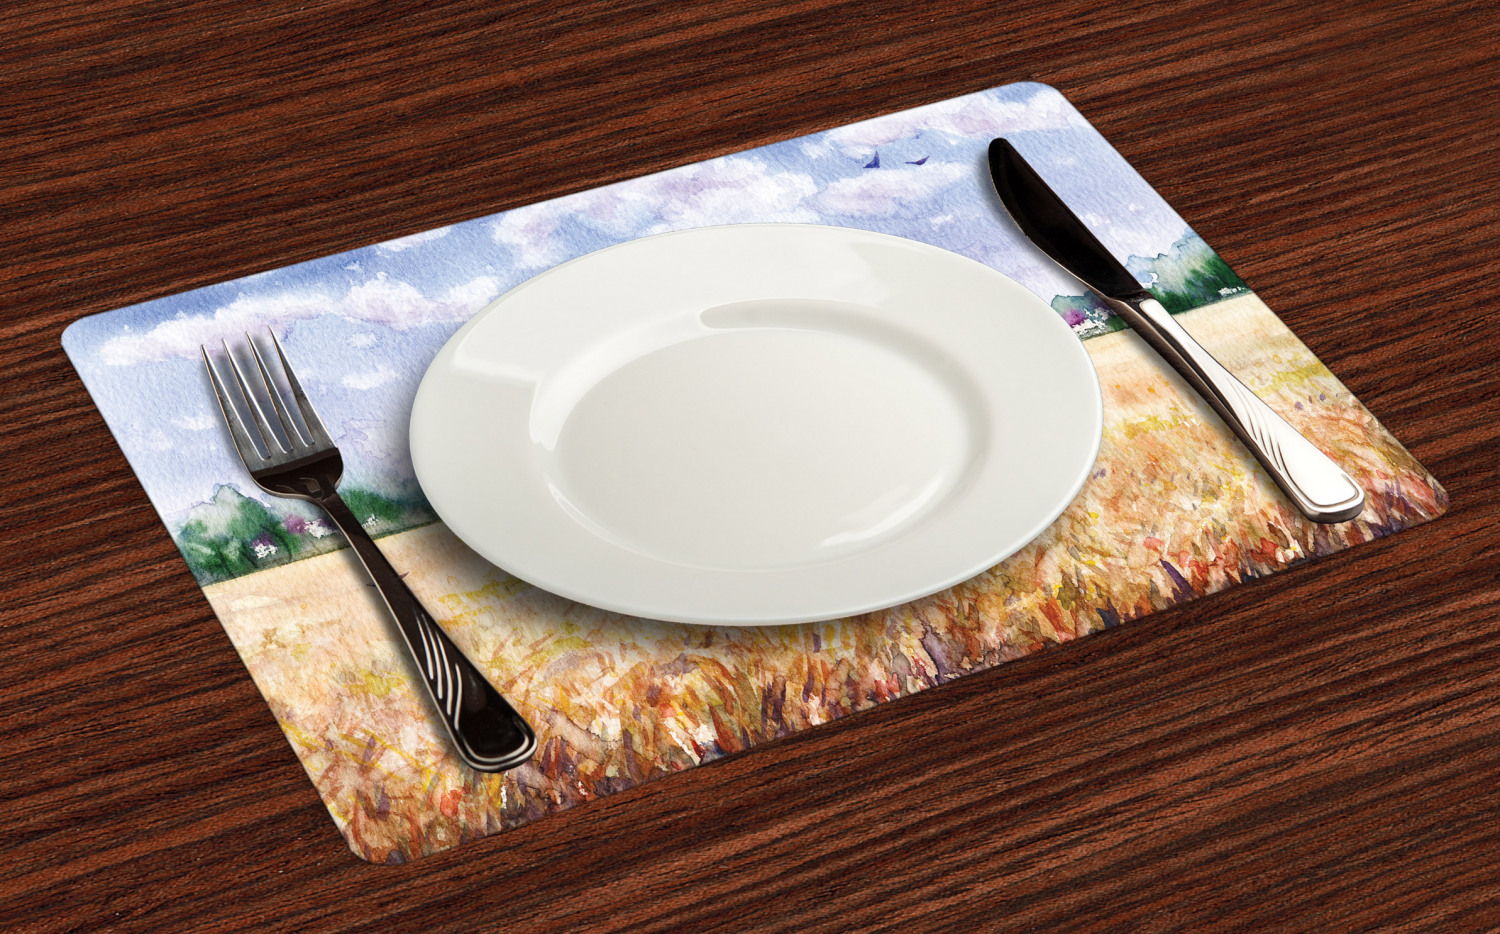 Ambesonne-Fabric-Place-Mats-Set-of-4-Placemats-for-Dining-Room-and-Kitchen-Table thumbnail 229